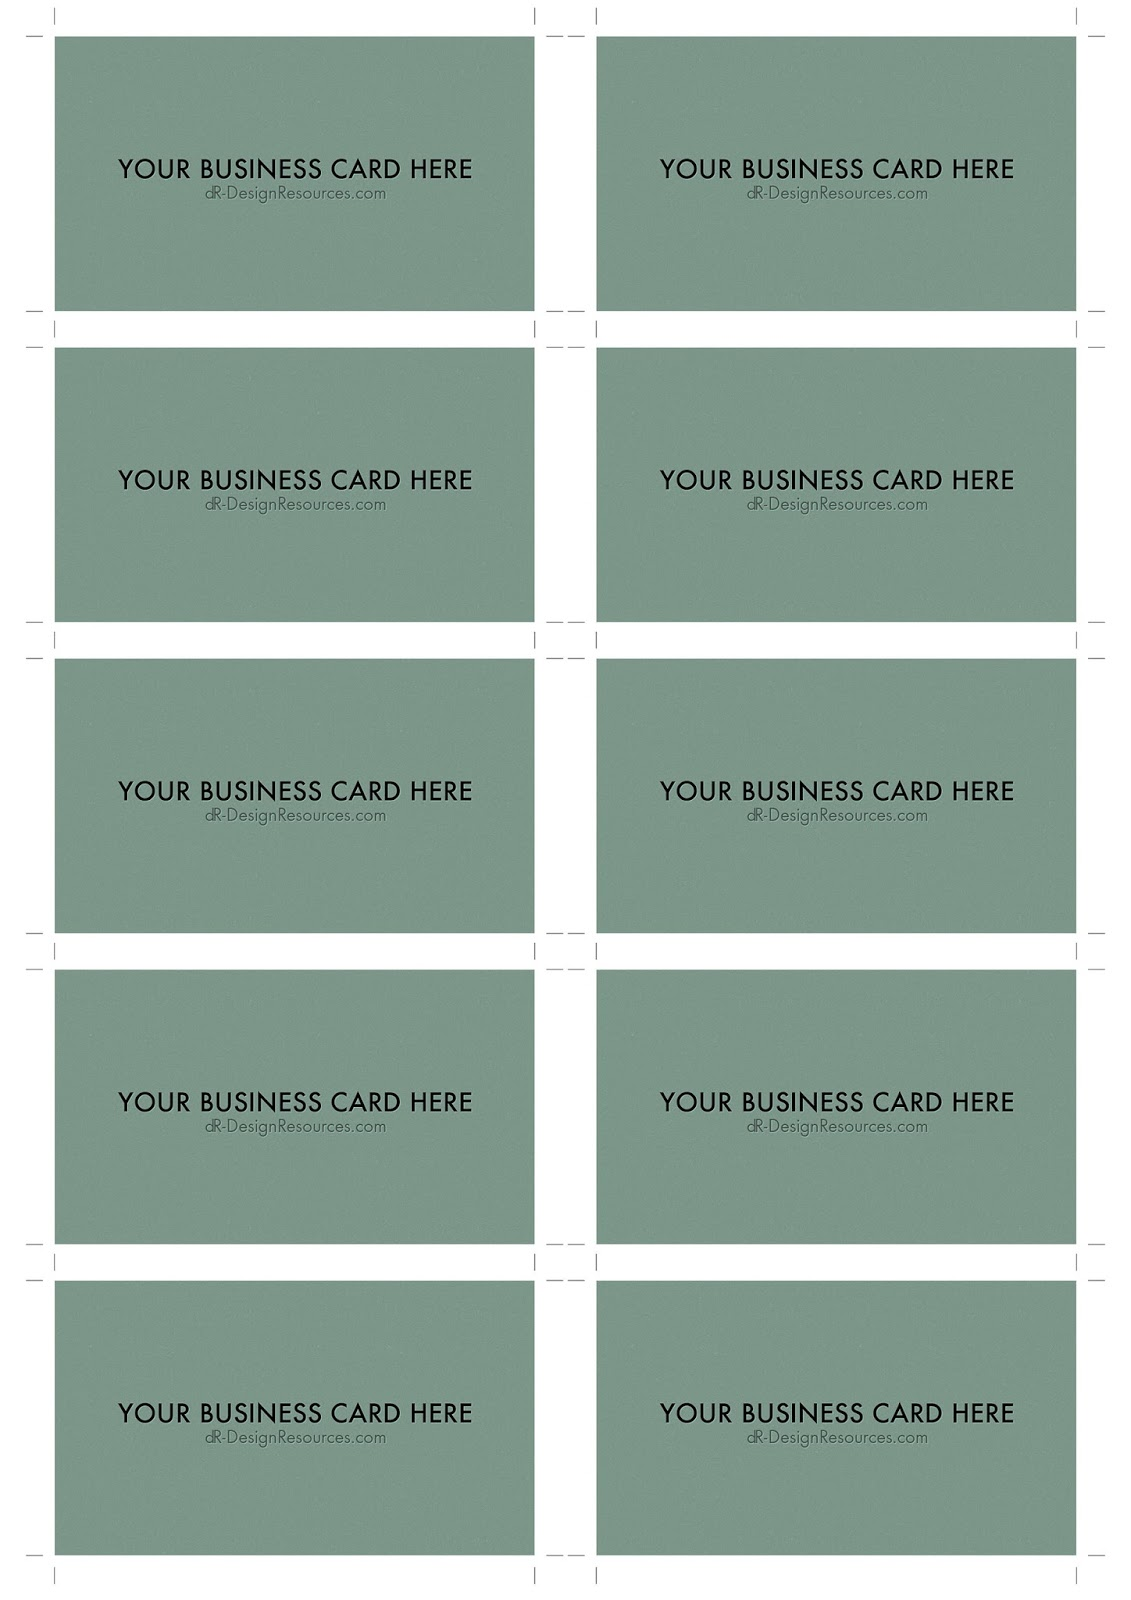 Free Photoshop Tutorials - Template for business cards 10 per sheet